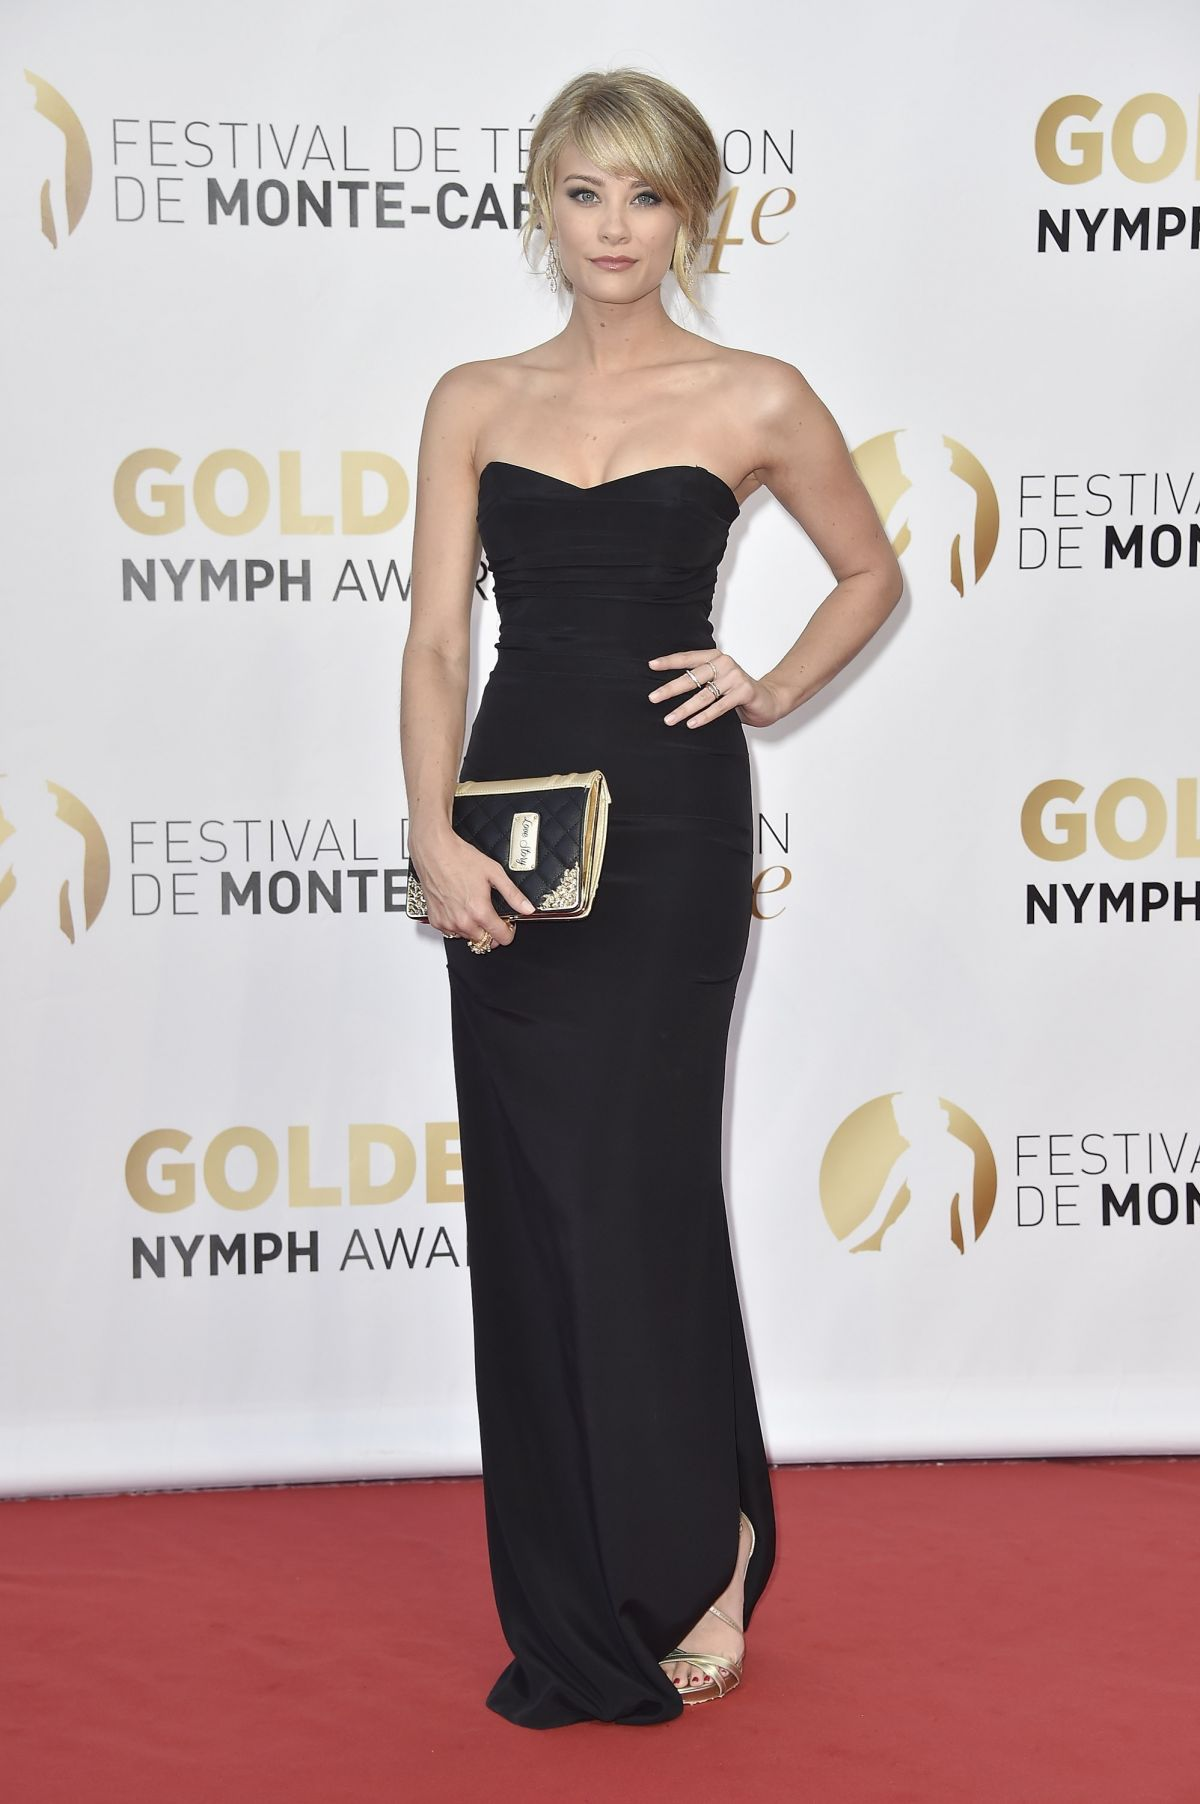 KIM MATULA at 2014 Monte Carlo TV Festival Closing Ceremony